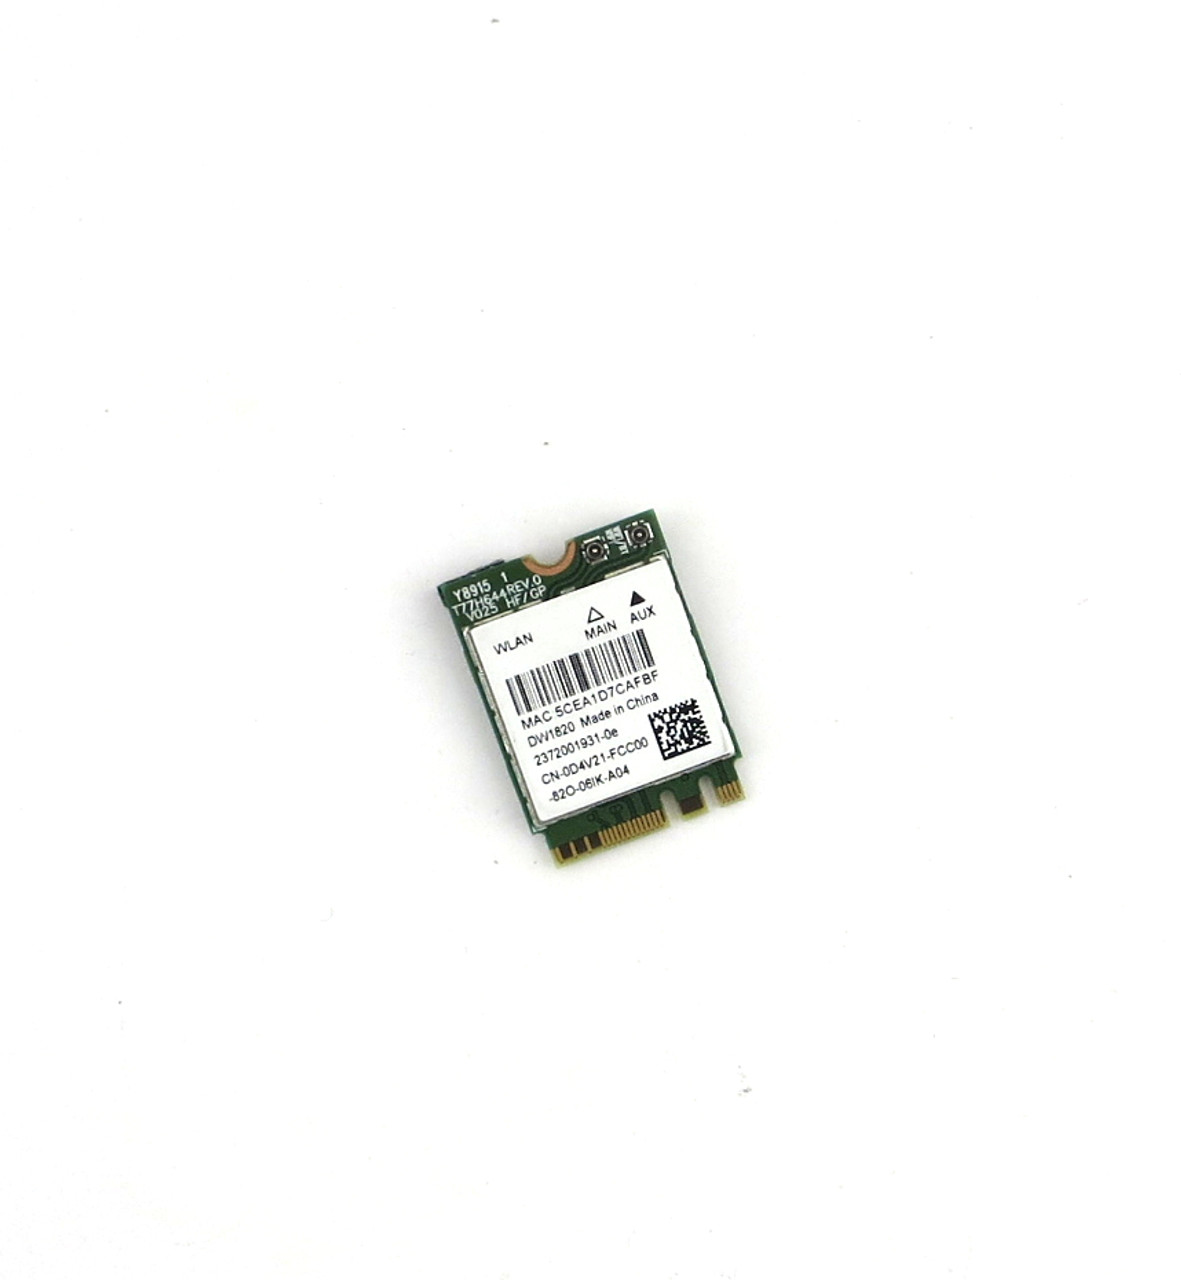 Dell 1820 DW1820 WLAN WiFi 802.11AC M.2 Card + Bluetooth 4.1  - D4V21